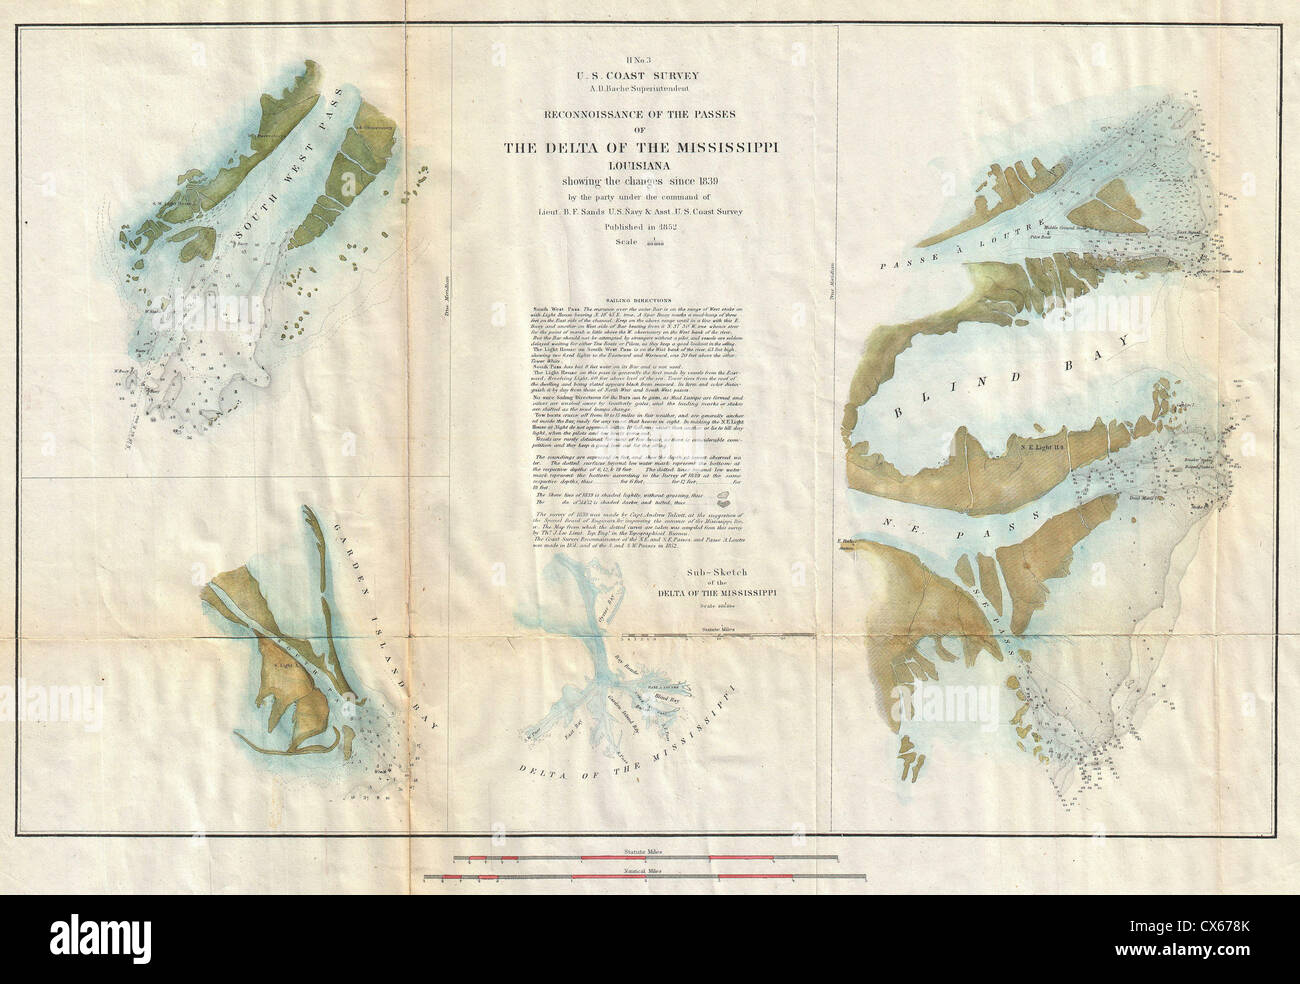 1852 U.S. Coast Survey Map of the Mississippi River Delta Stock ...